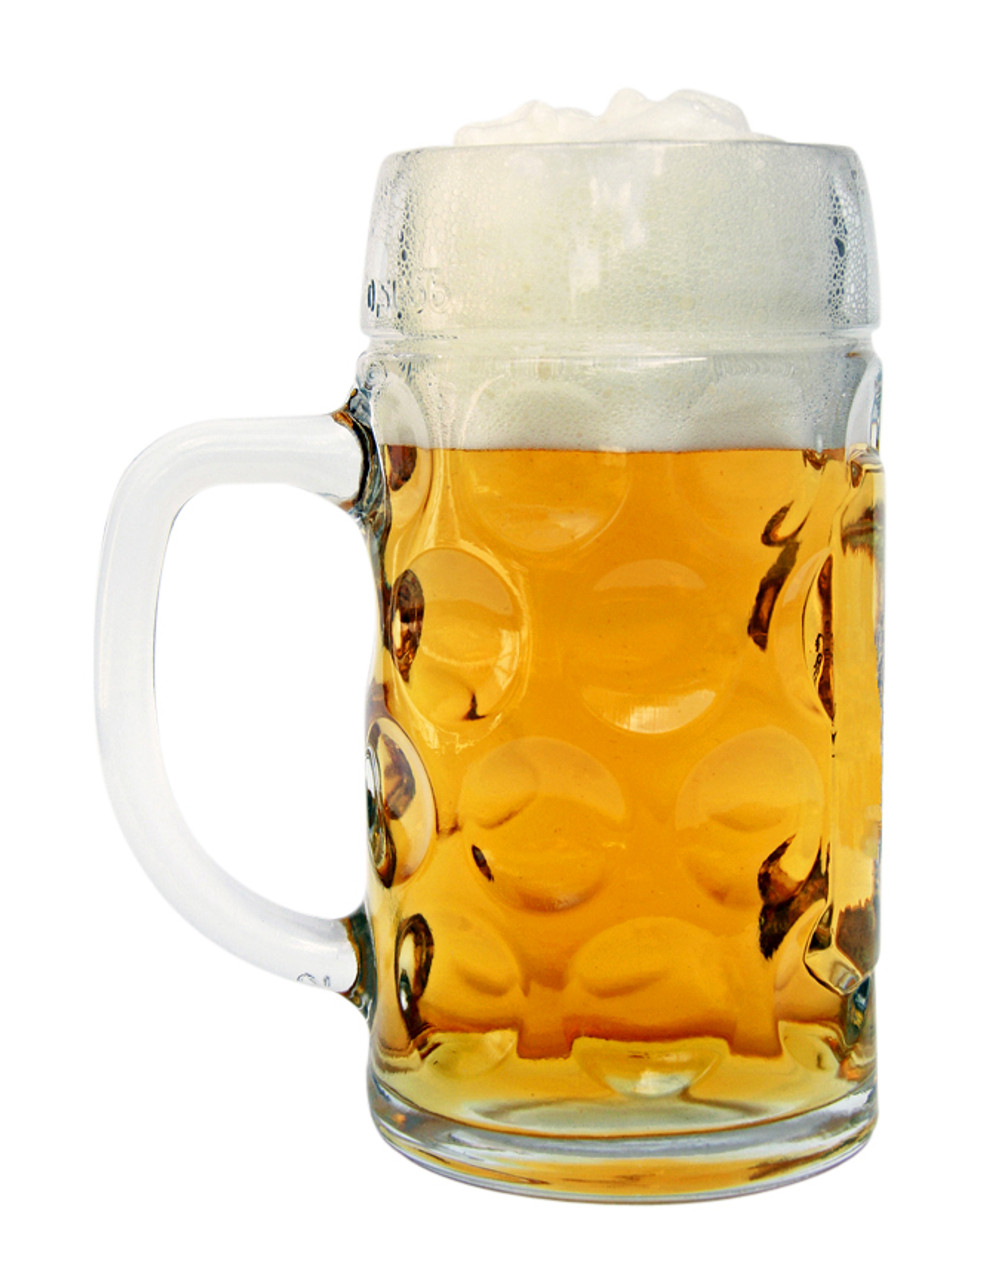 Your Favorite Beer in a Traditional German Personalized Beer Mug